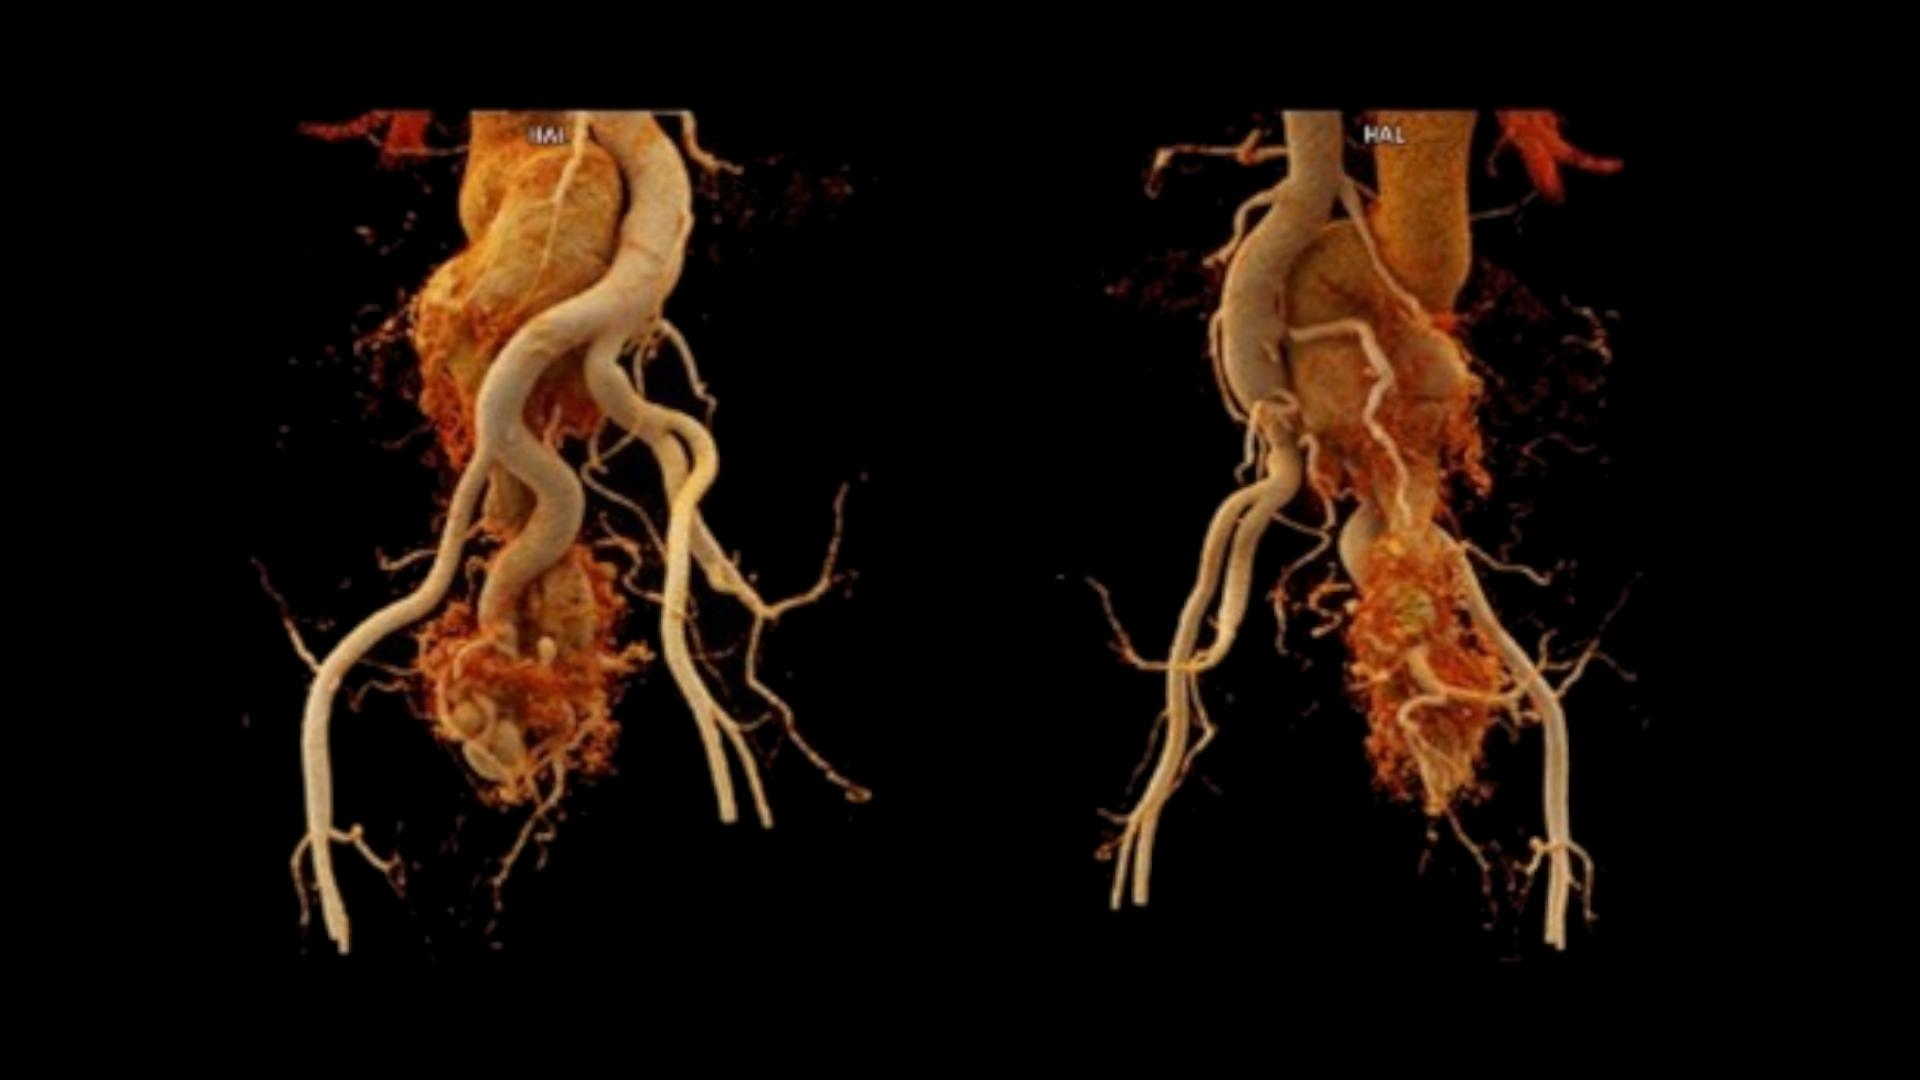 cVRT images show a dilated RIIA entangling distally with the RIIV. The IVC is opacified in the arterial phase, tortuous and dilated in the abdominal segment.